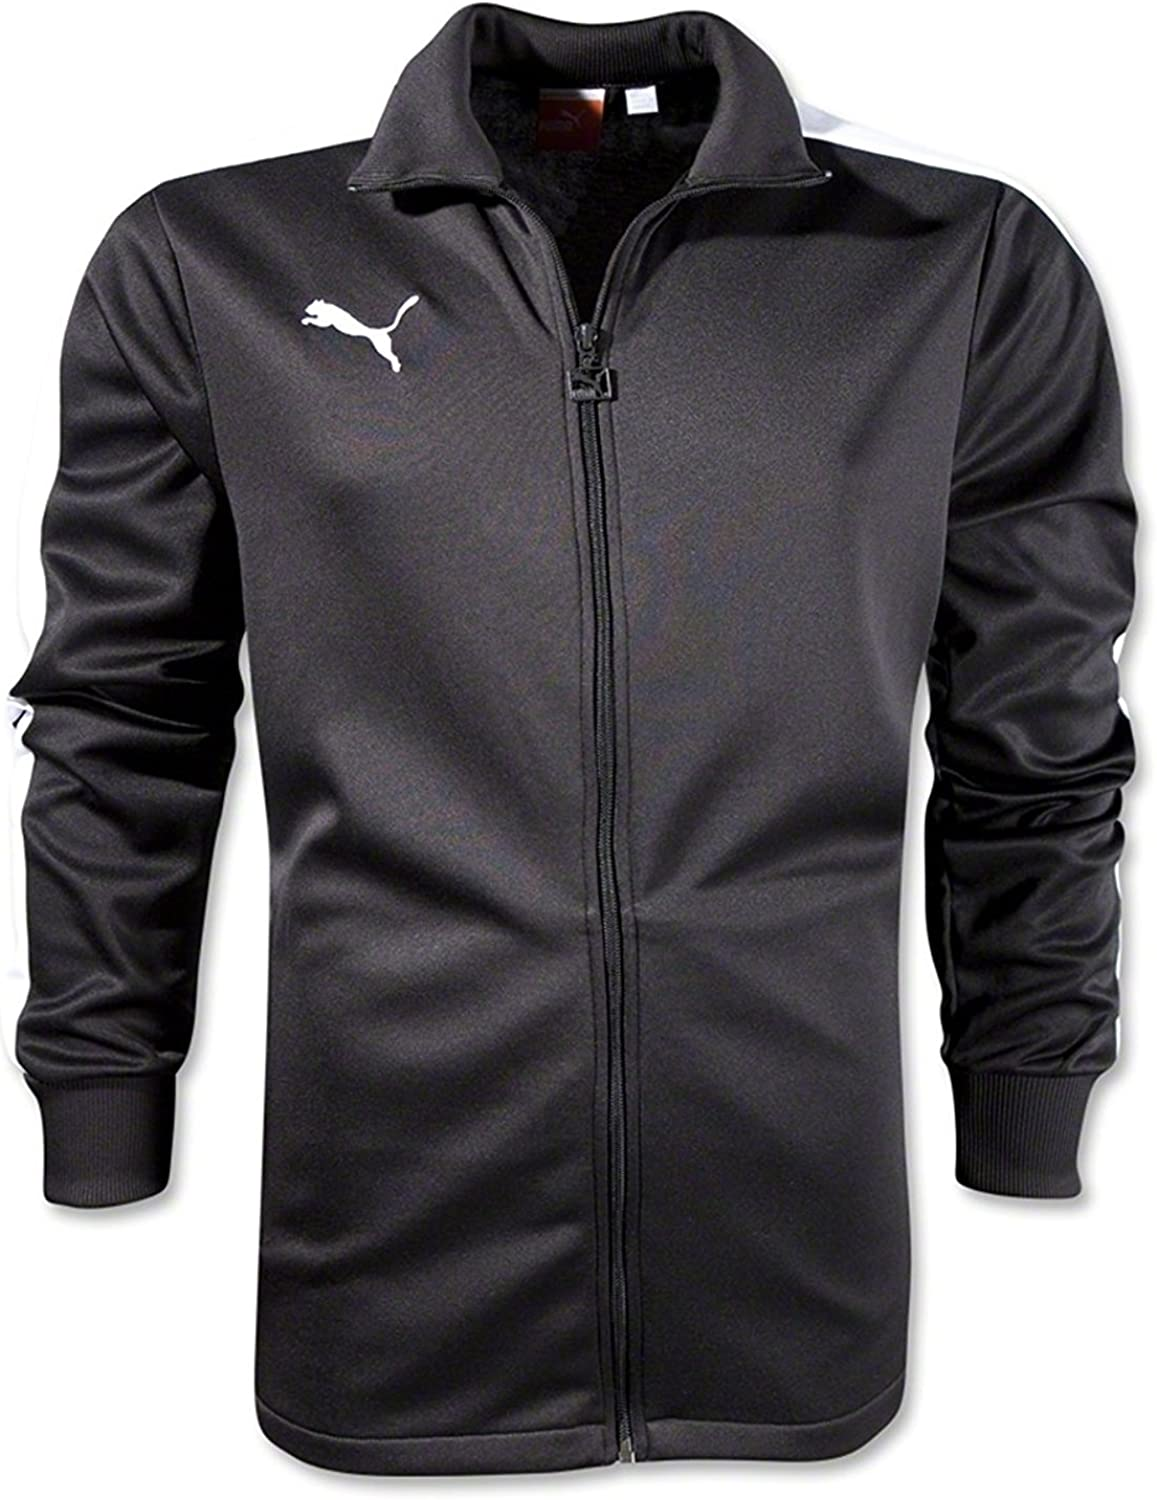 Puma Men's Icon Walk Out Jacket Medium Youth Black-White Max 81% OFF Al sold out.